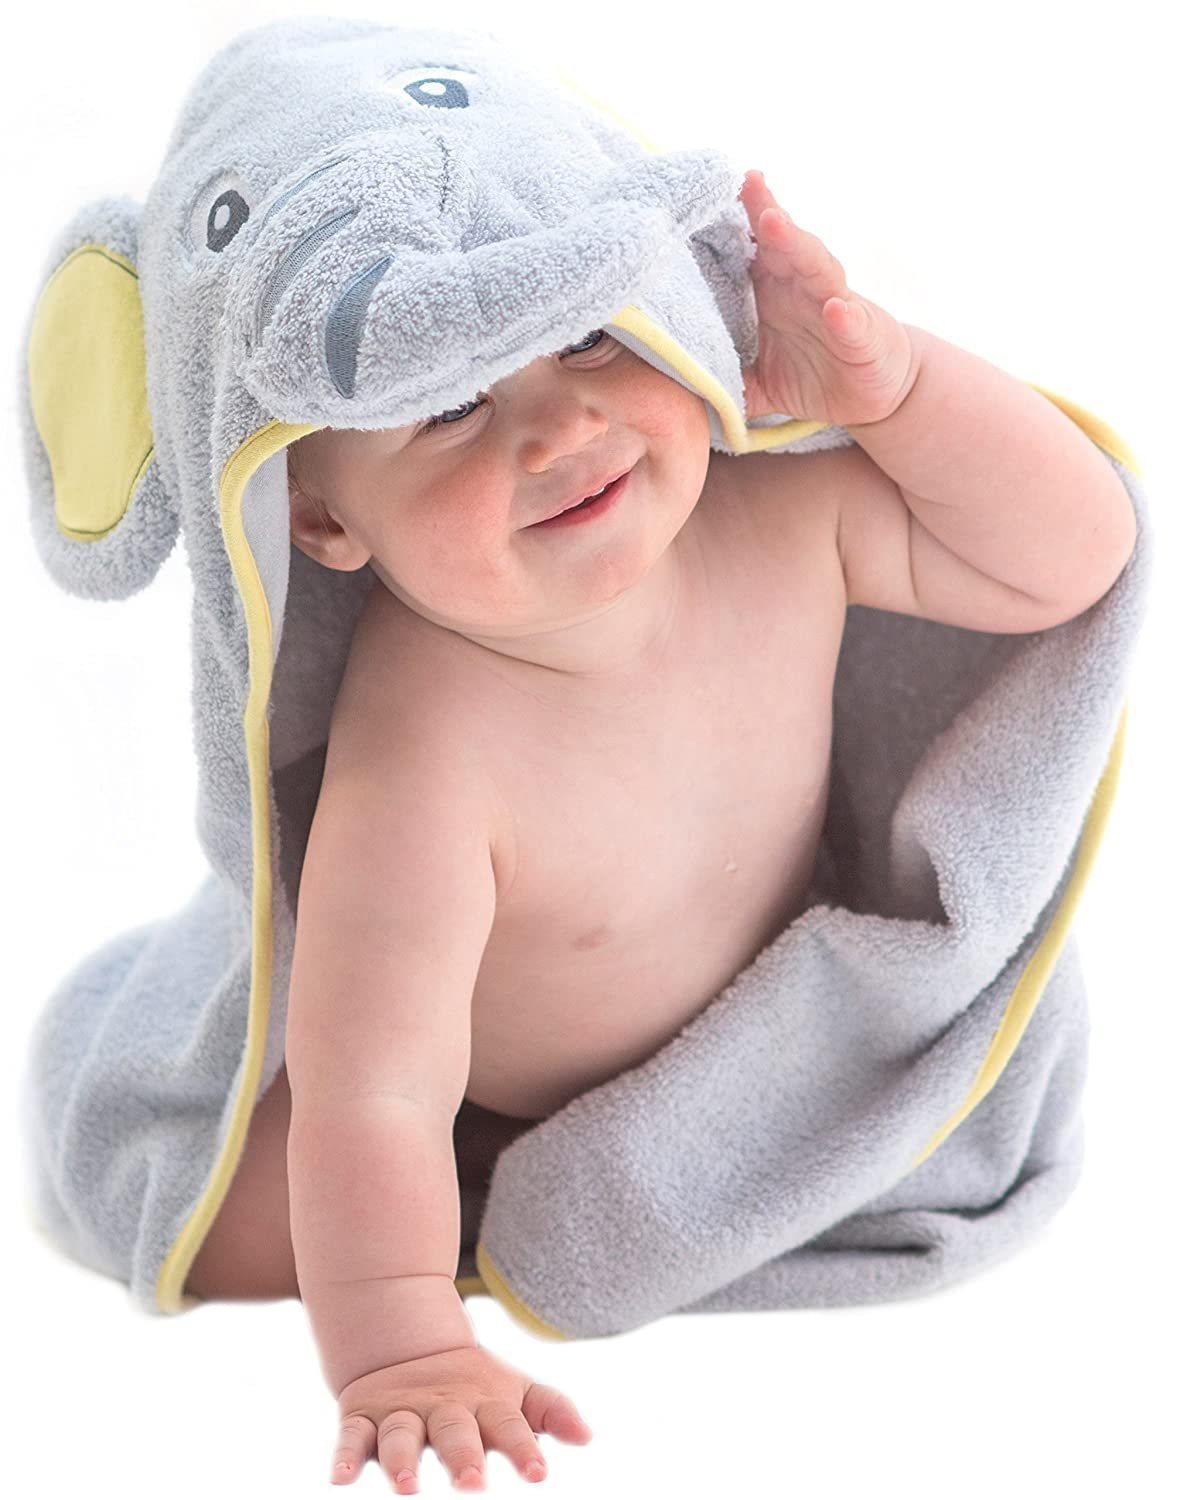 Little Tinkers World Elephant Hooded Baby Towel, Natural Cotton, 30x30-Inch size (Gray, Small) LTW